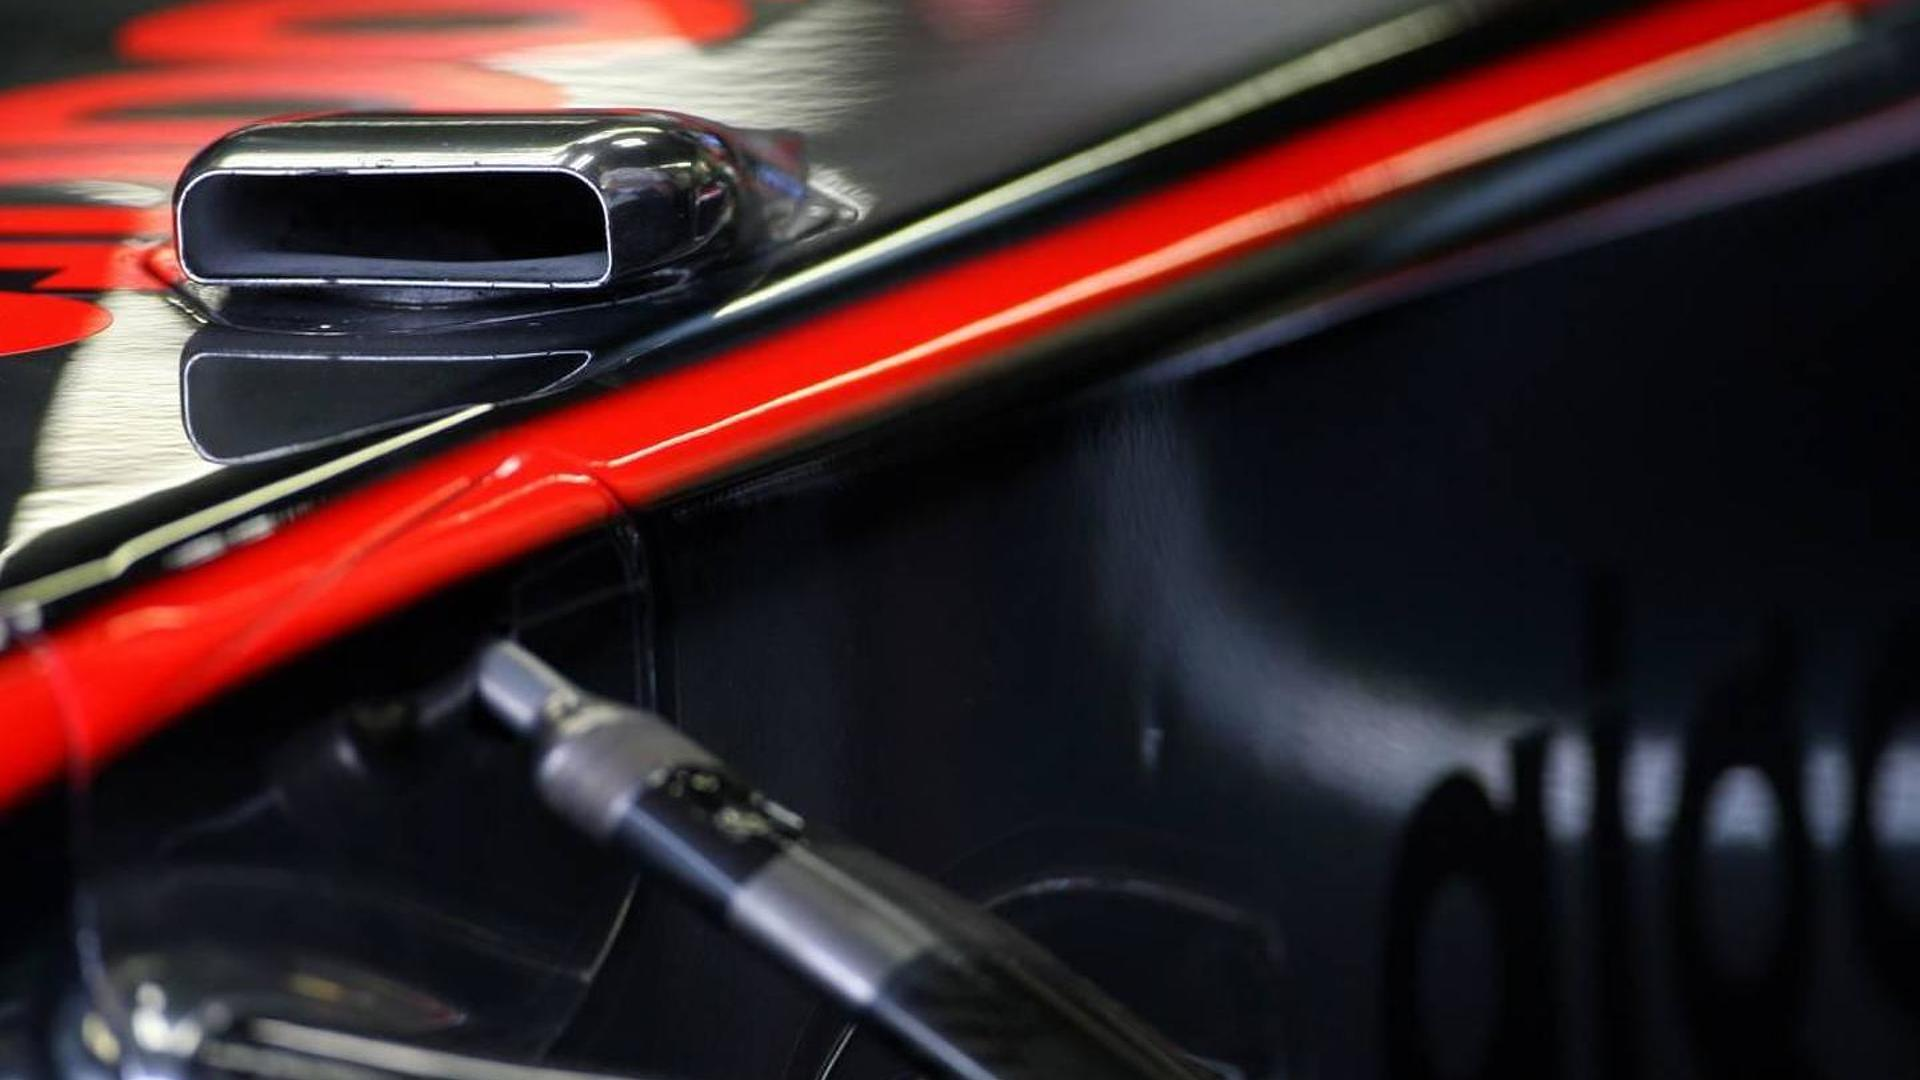 Mercedes engines and F-ducts lead pace in Canada